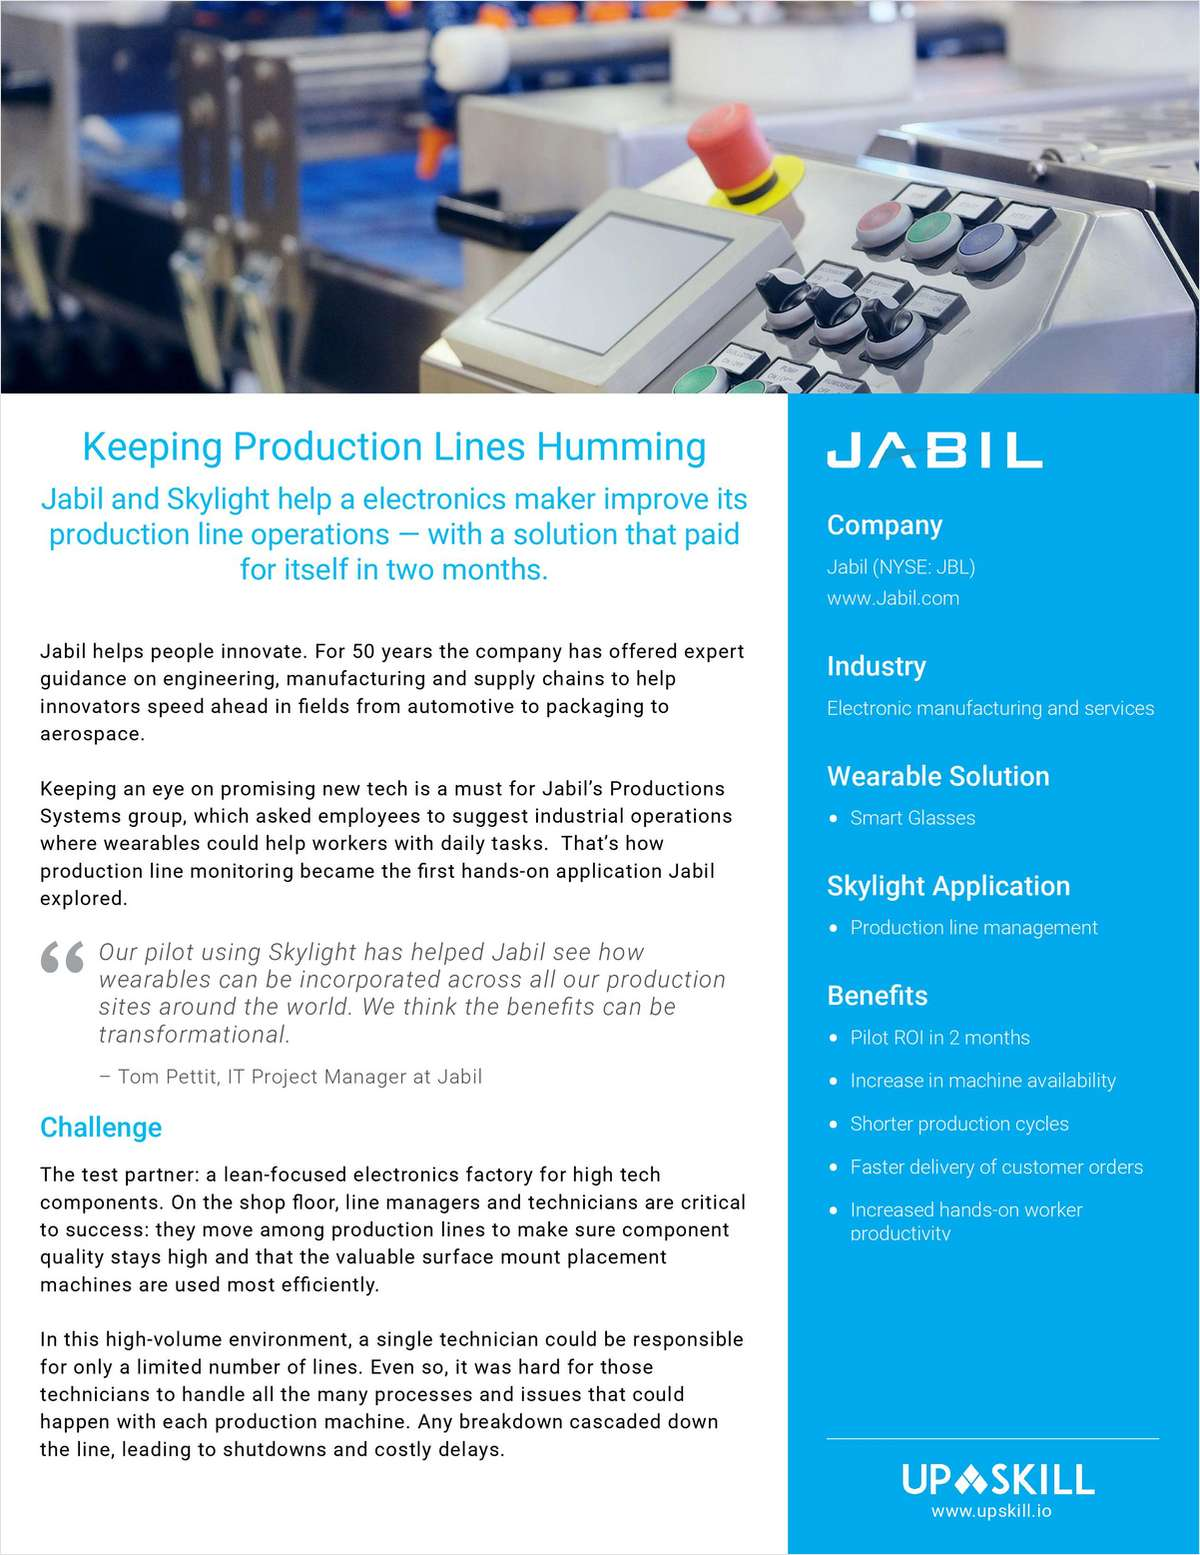 How Jabil Keeps Production Lines Humming Using Smart Glasses